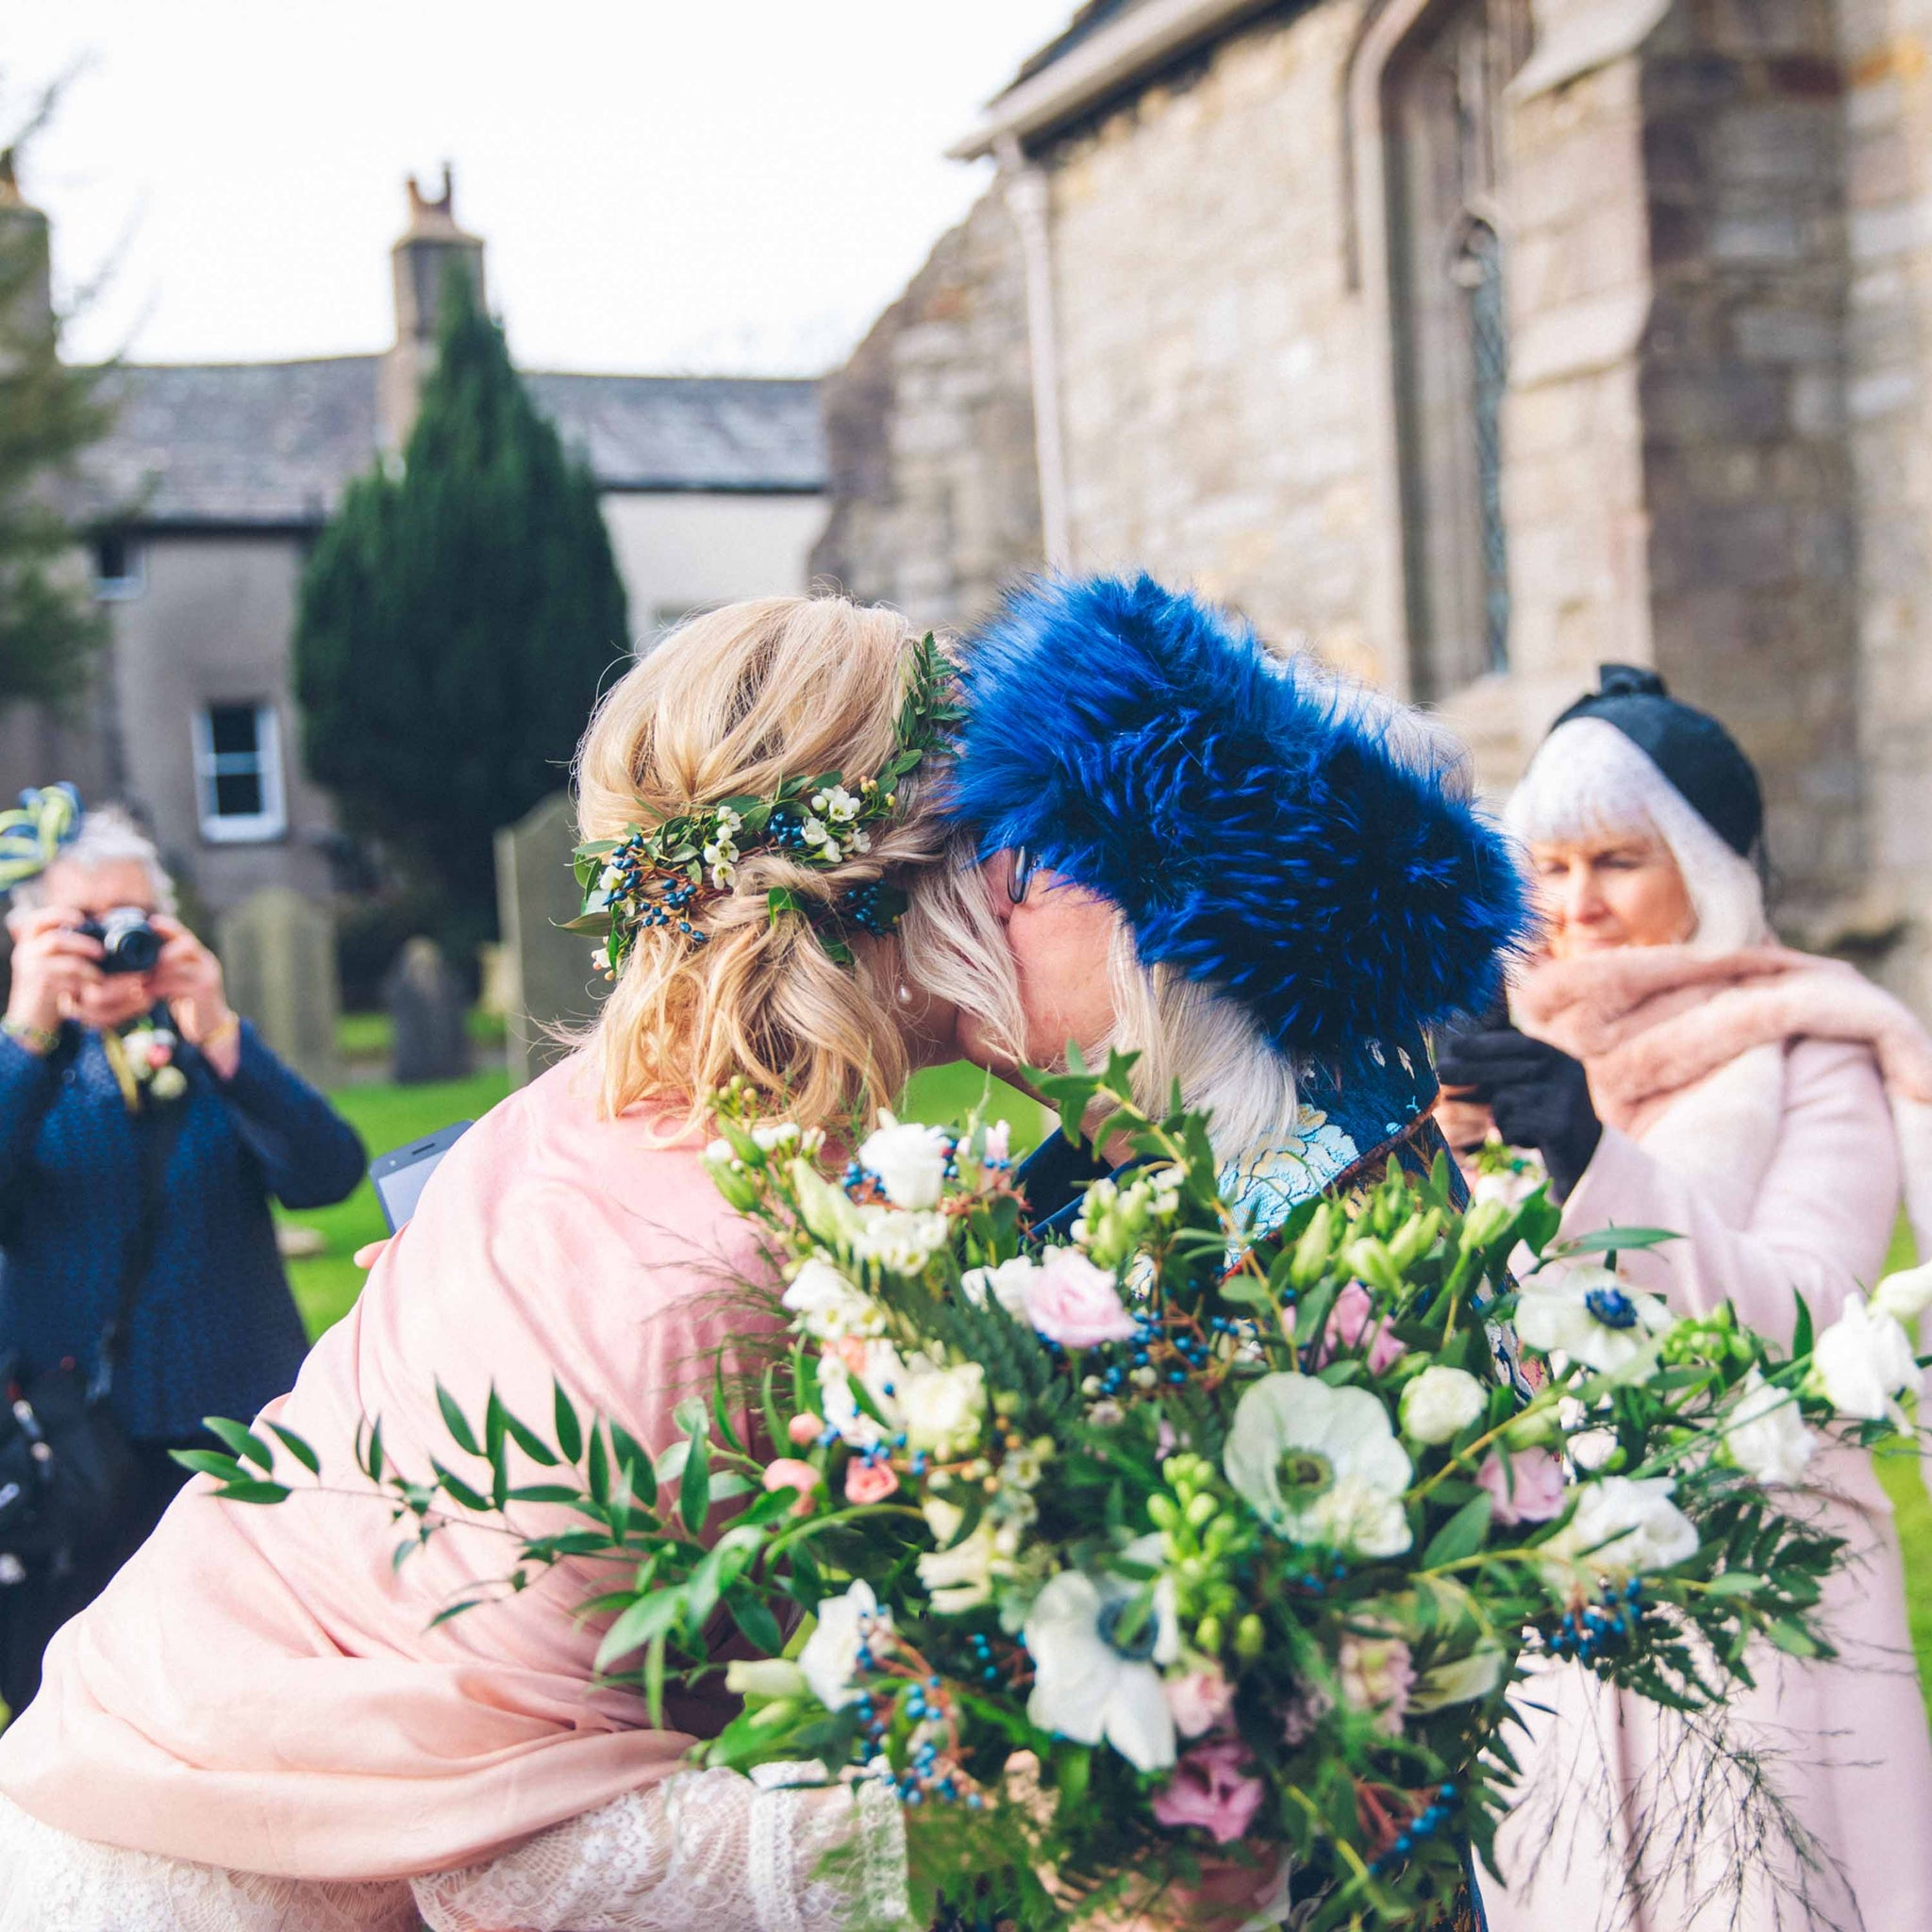 an embrace at a wedding with a large bouquet of flowers